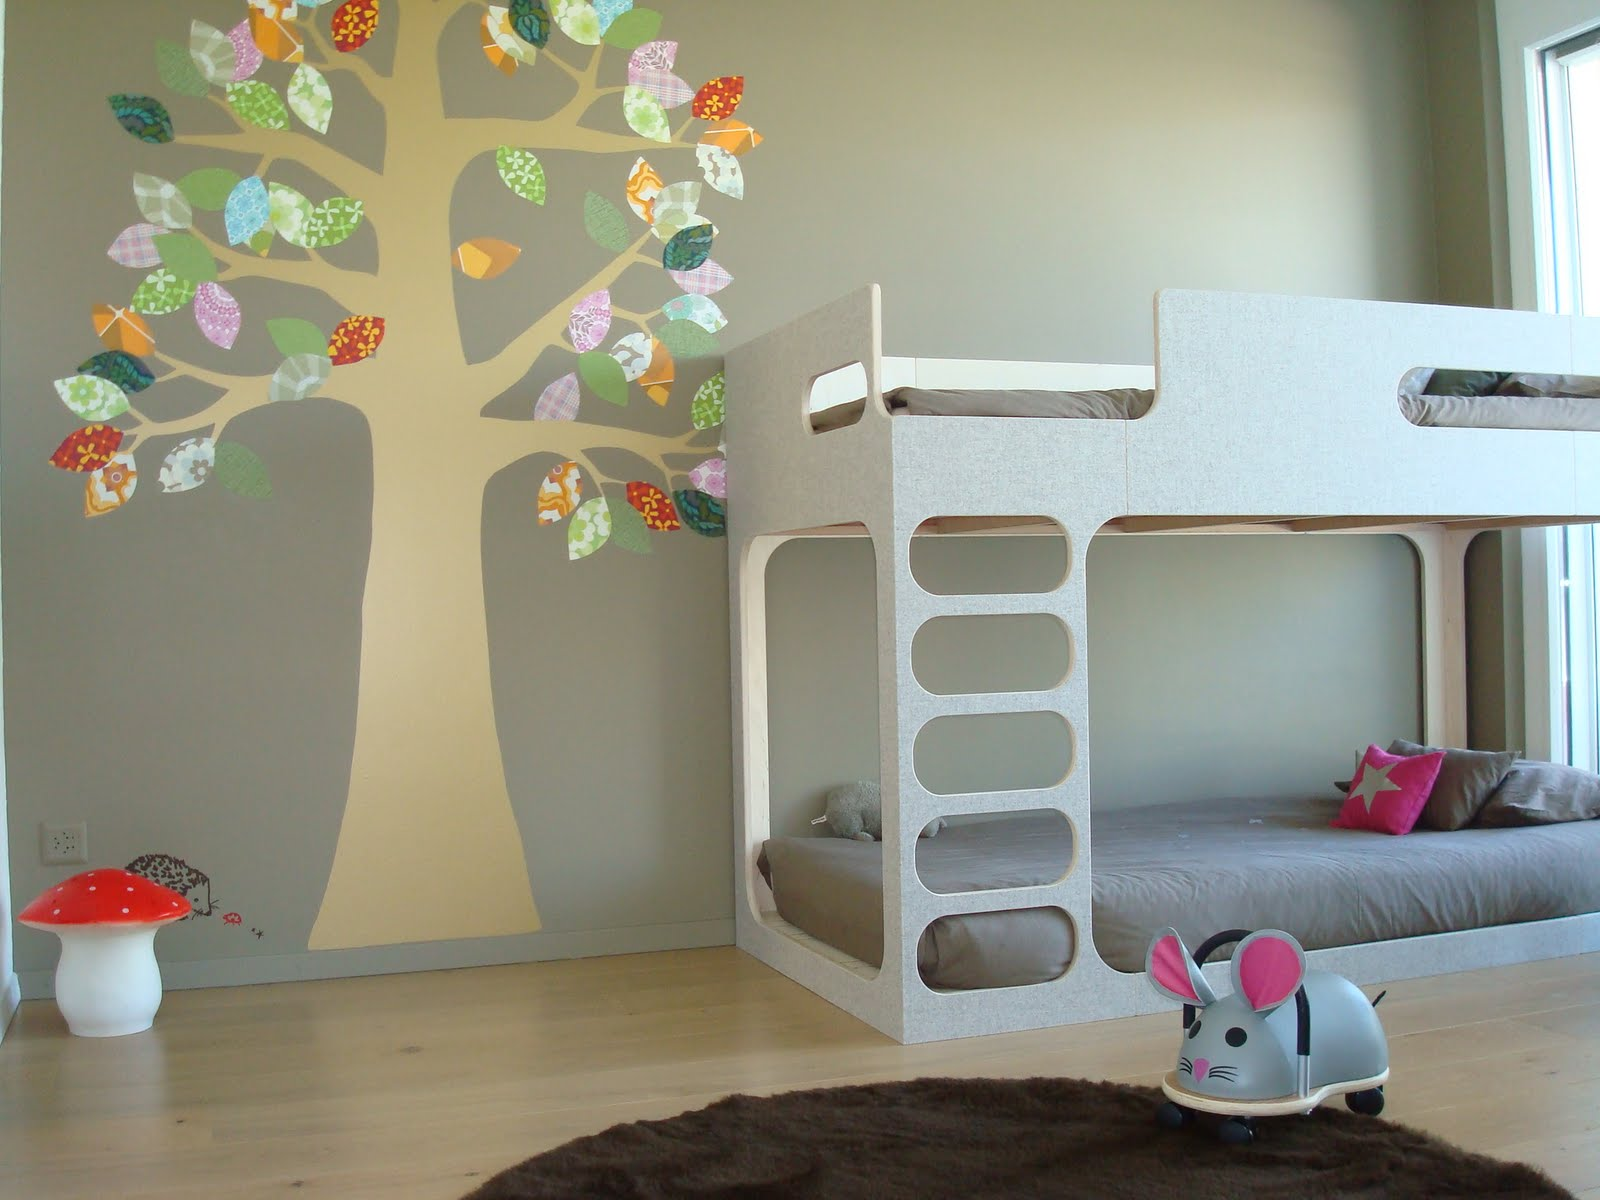 Childrens bedroom wallpaper ideas home decor uk for Wallpaper ideas